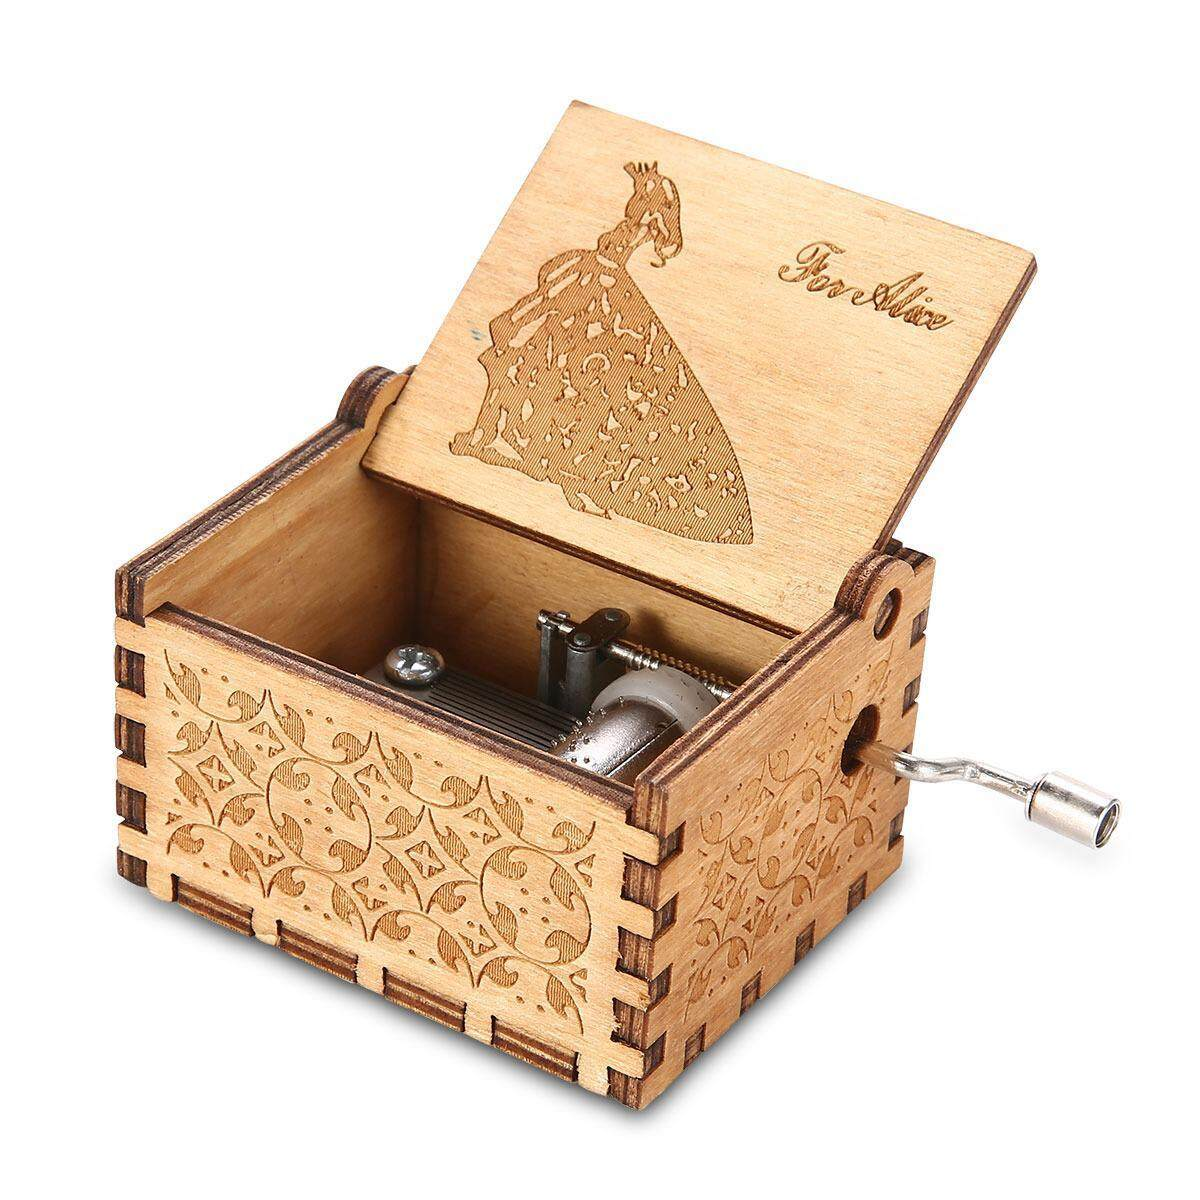 #2 Music Box Vintage Wooden Musical Wood Crafts Exquisite Birthday Gift Home Office Decoration